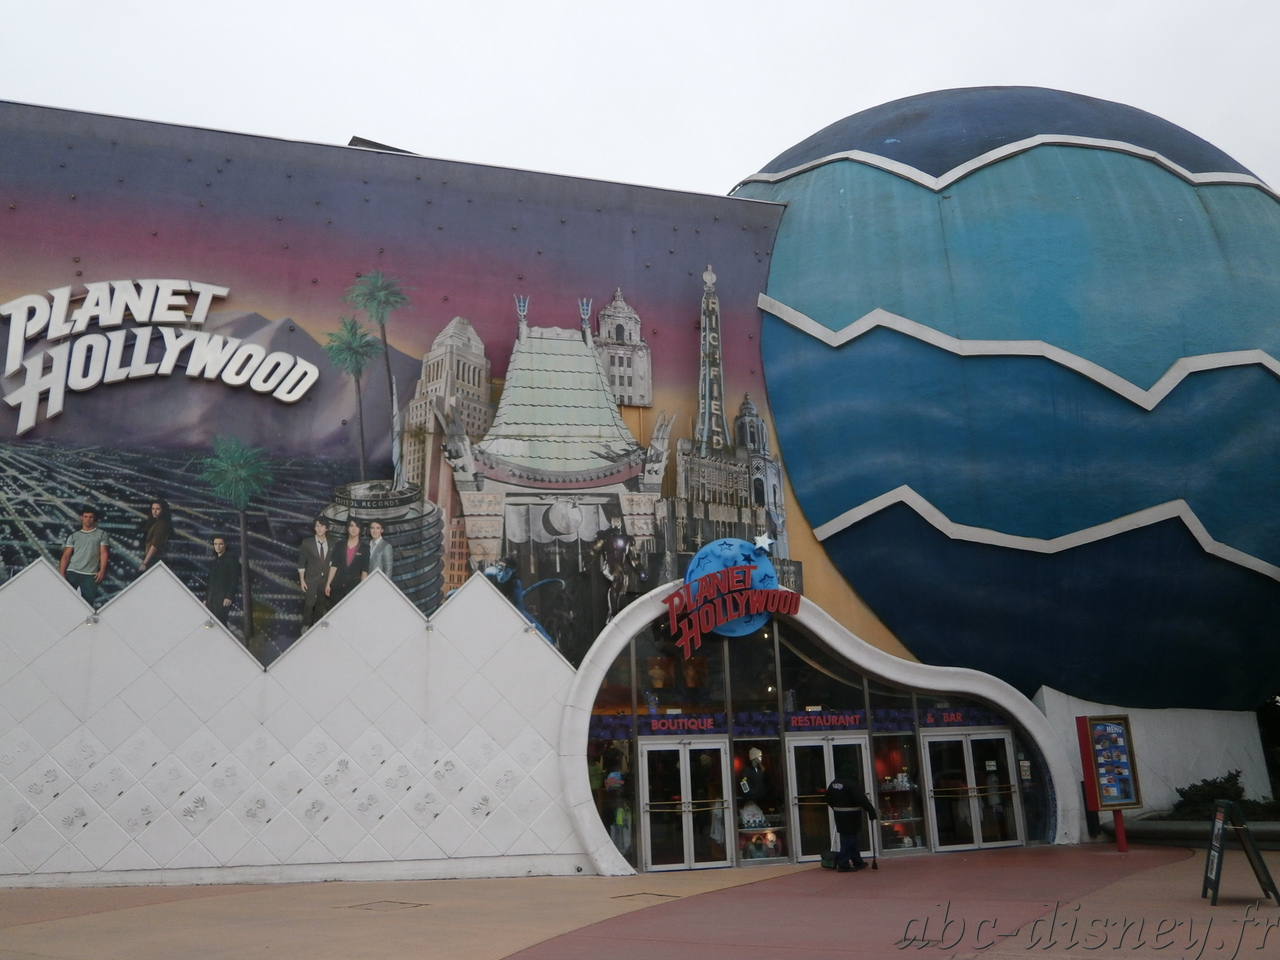 R planet hollywood 1